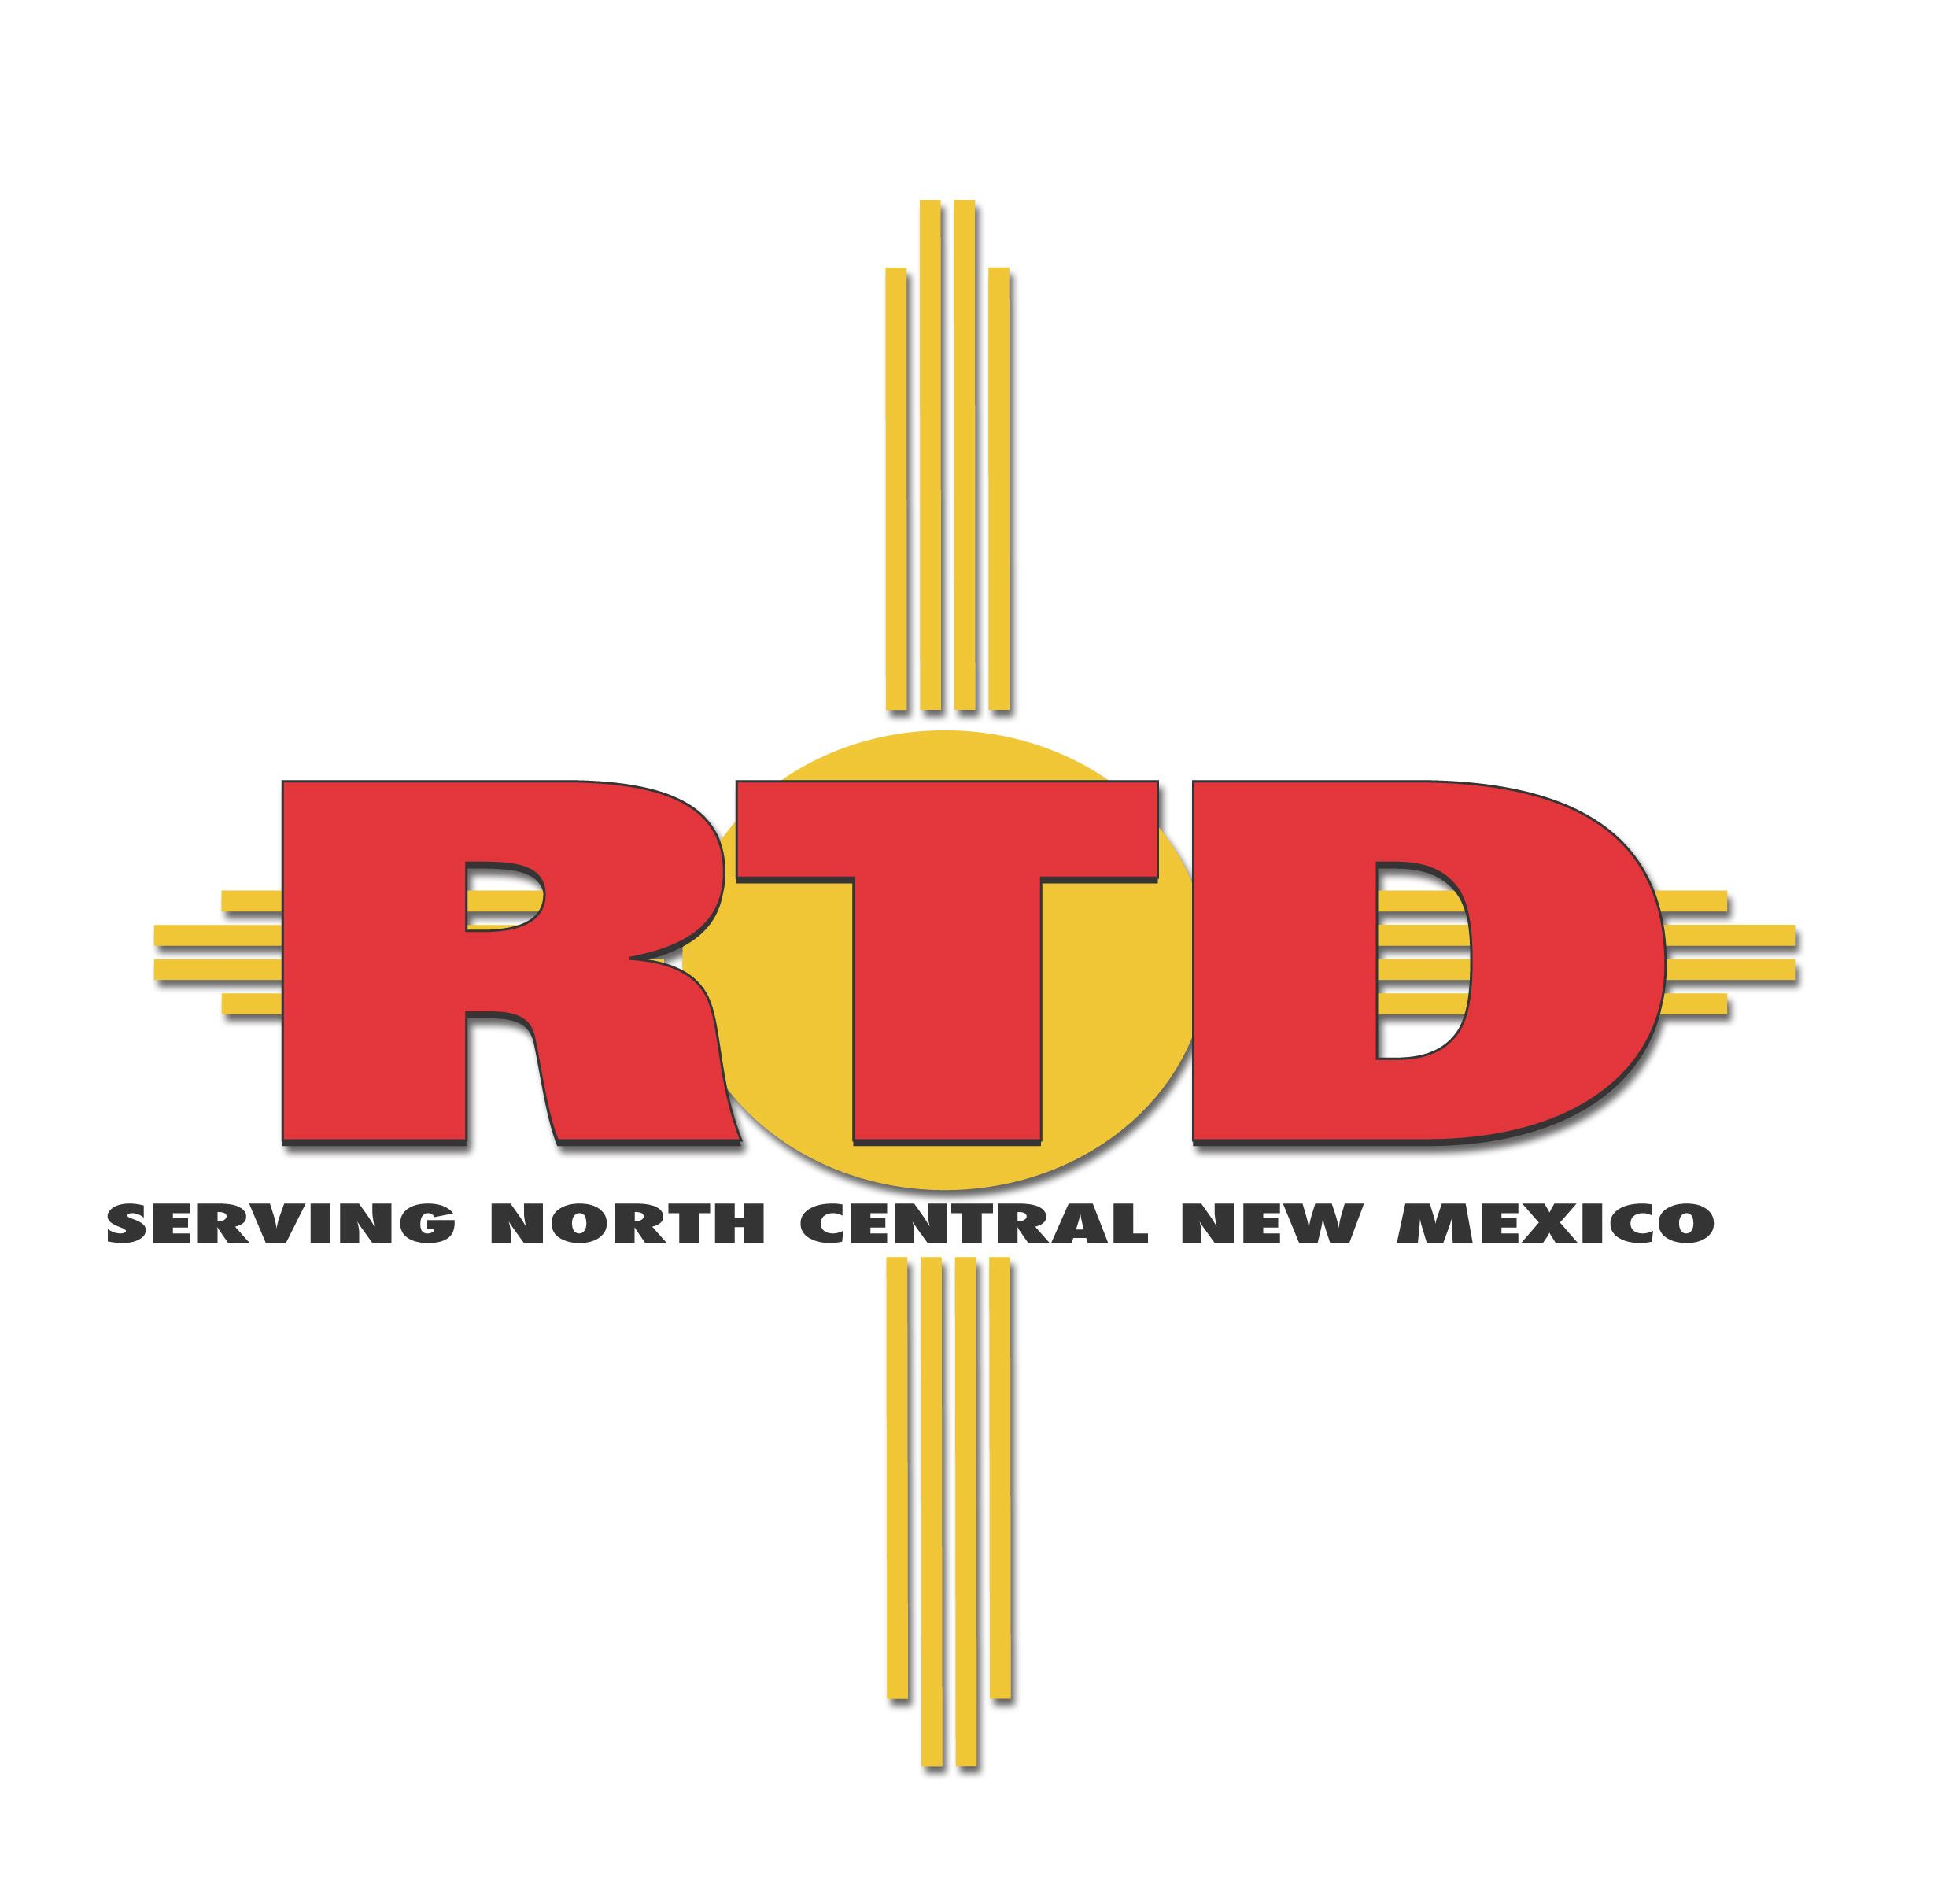 RTD Serving North Central New Mexico